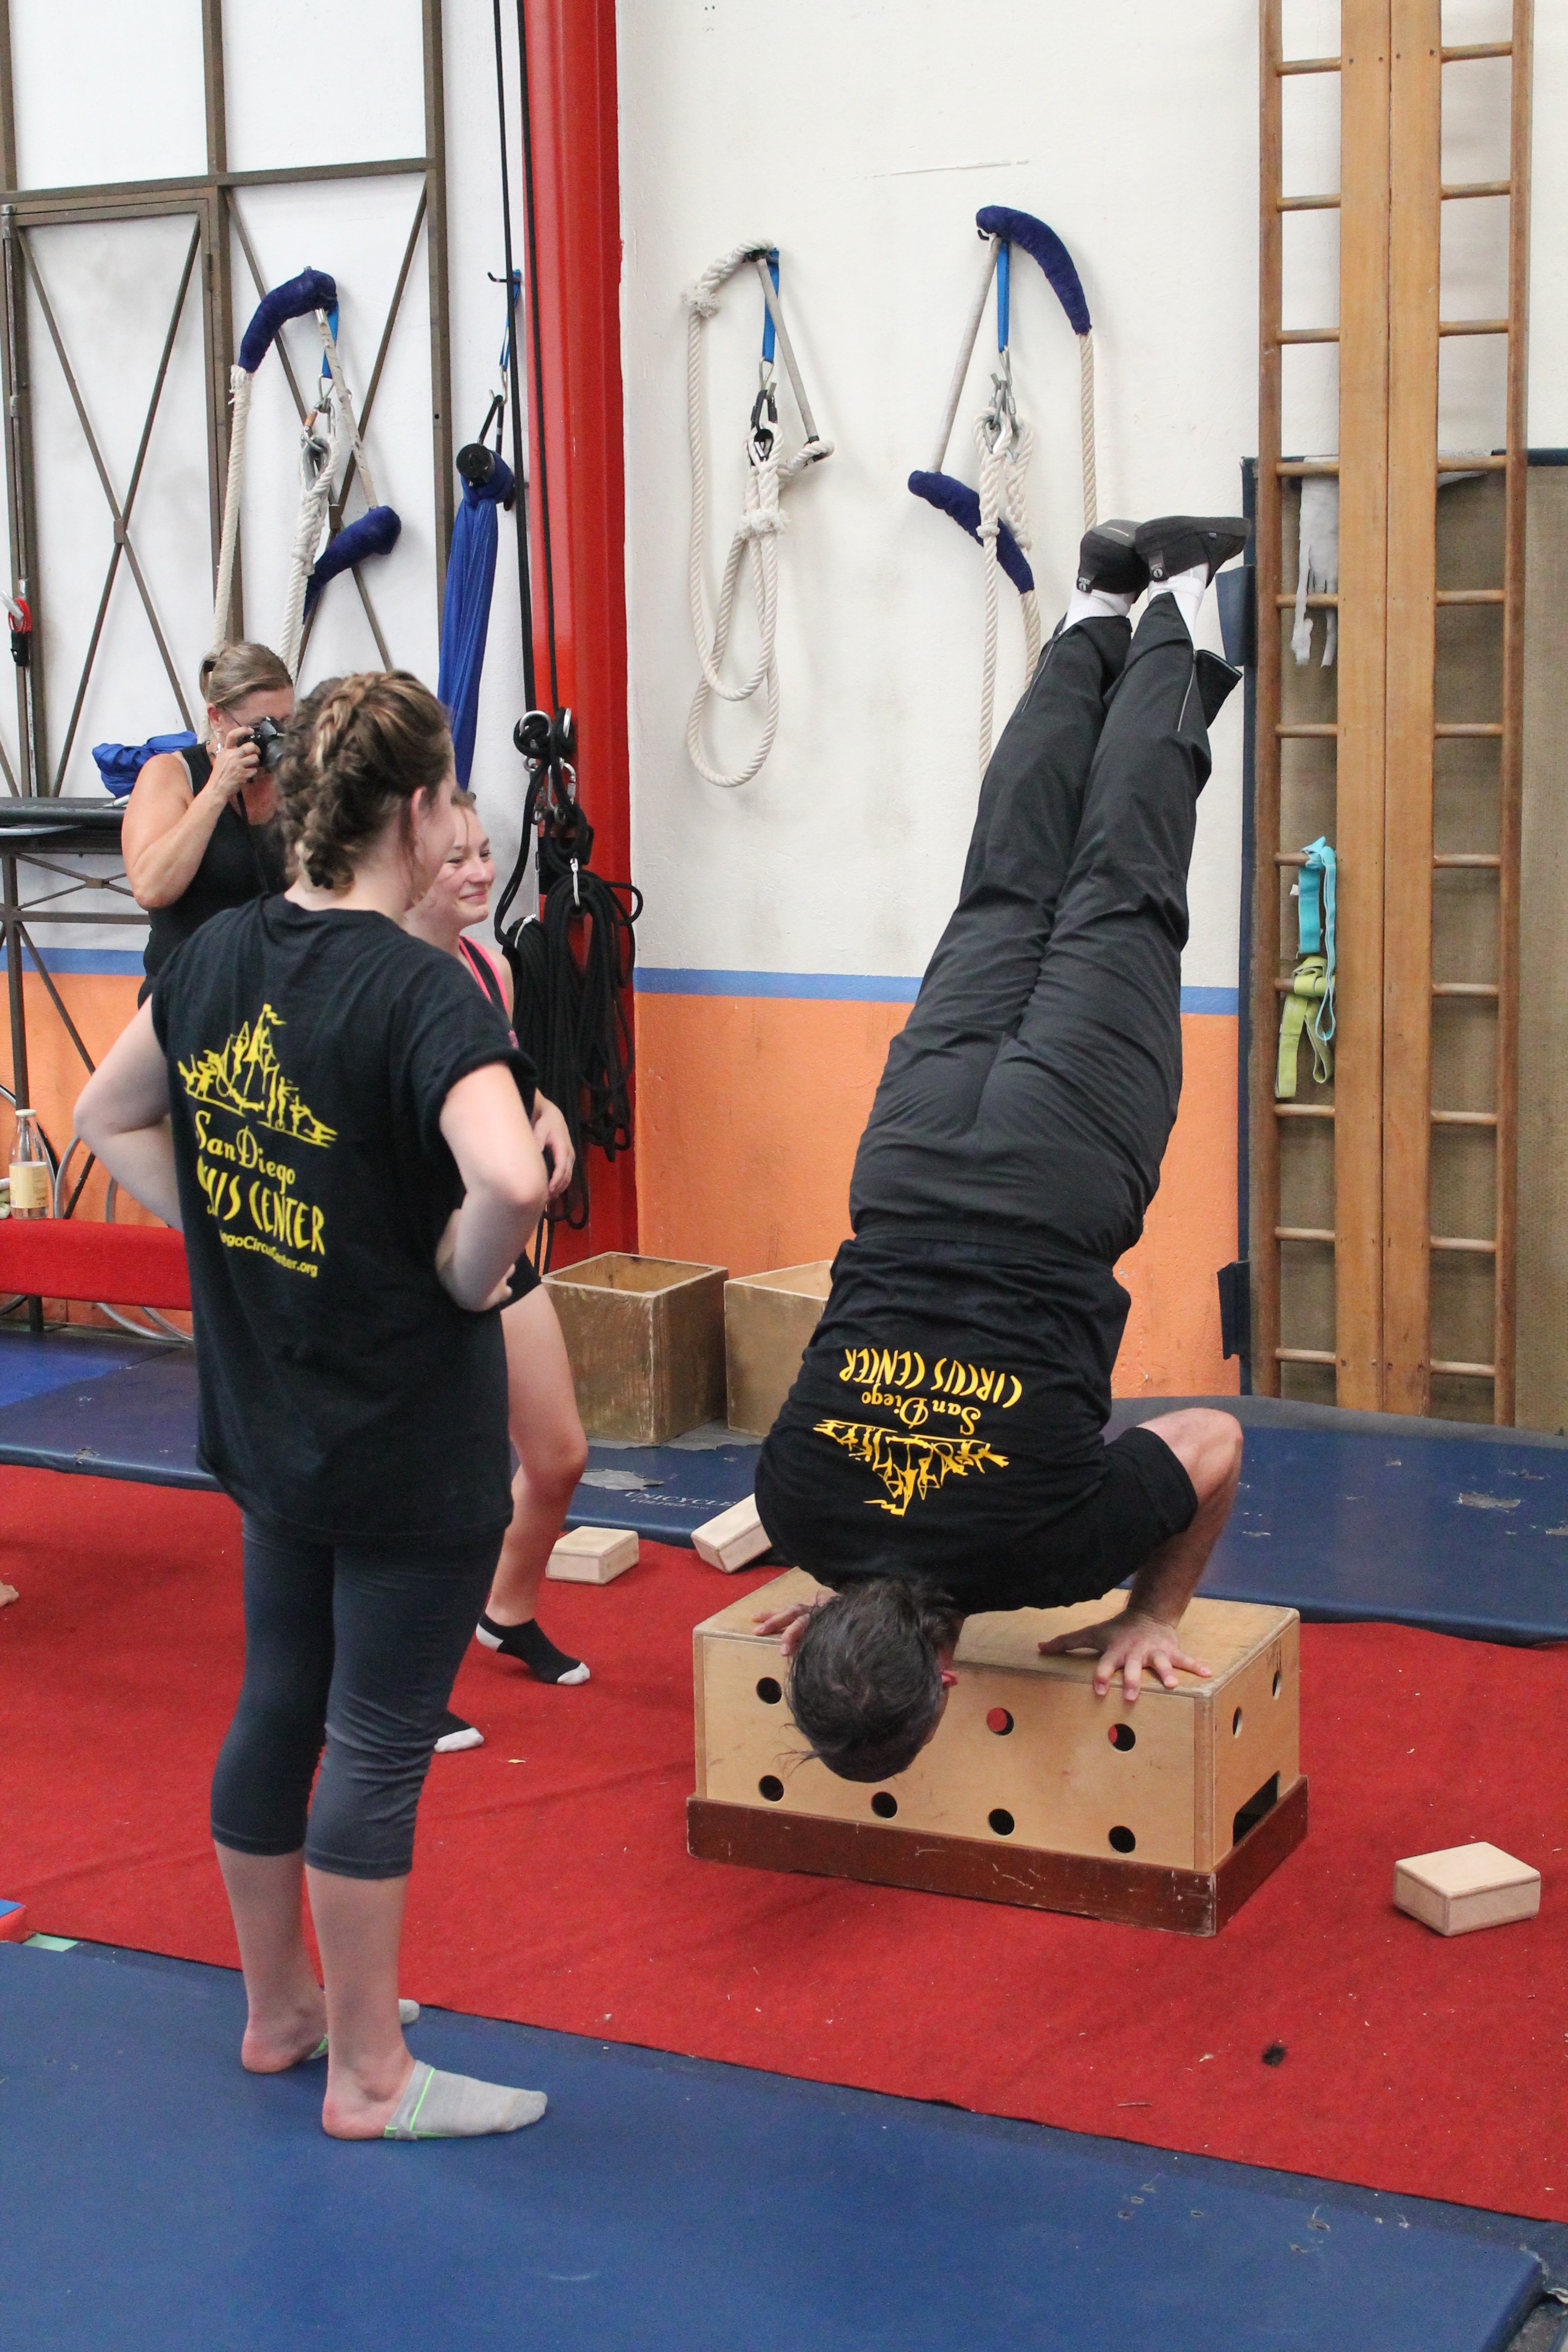 Demonstration of handstand conditioning drill in group workshop